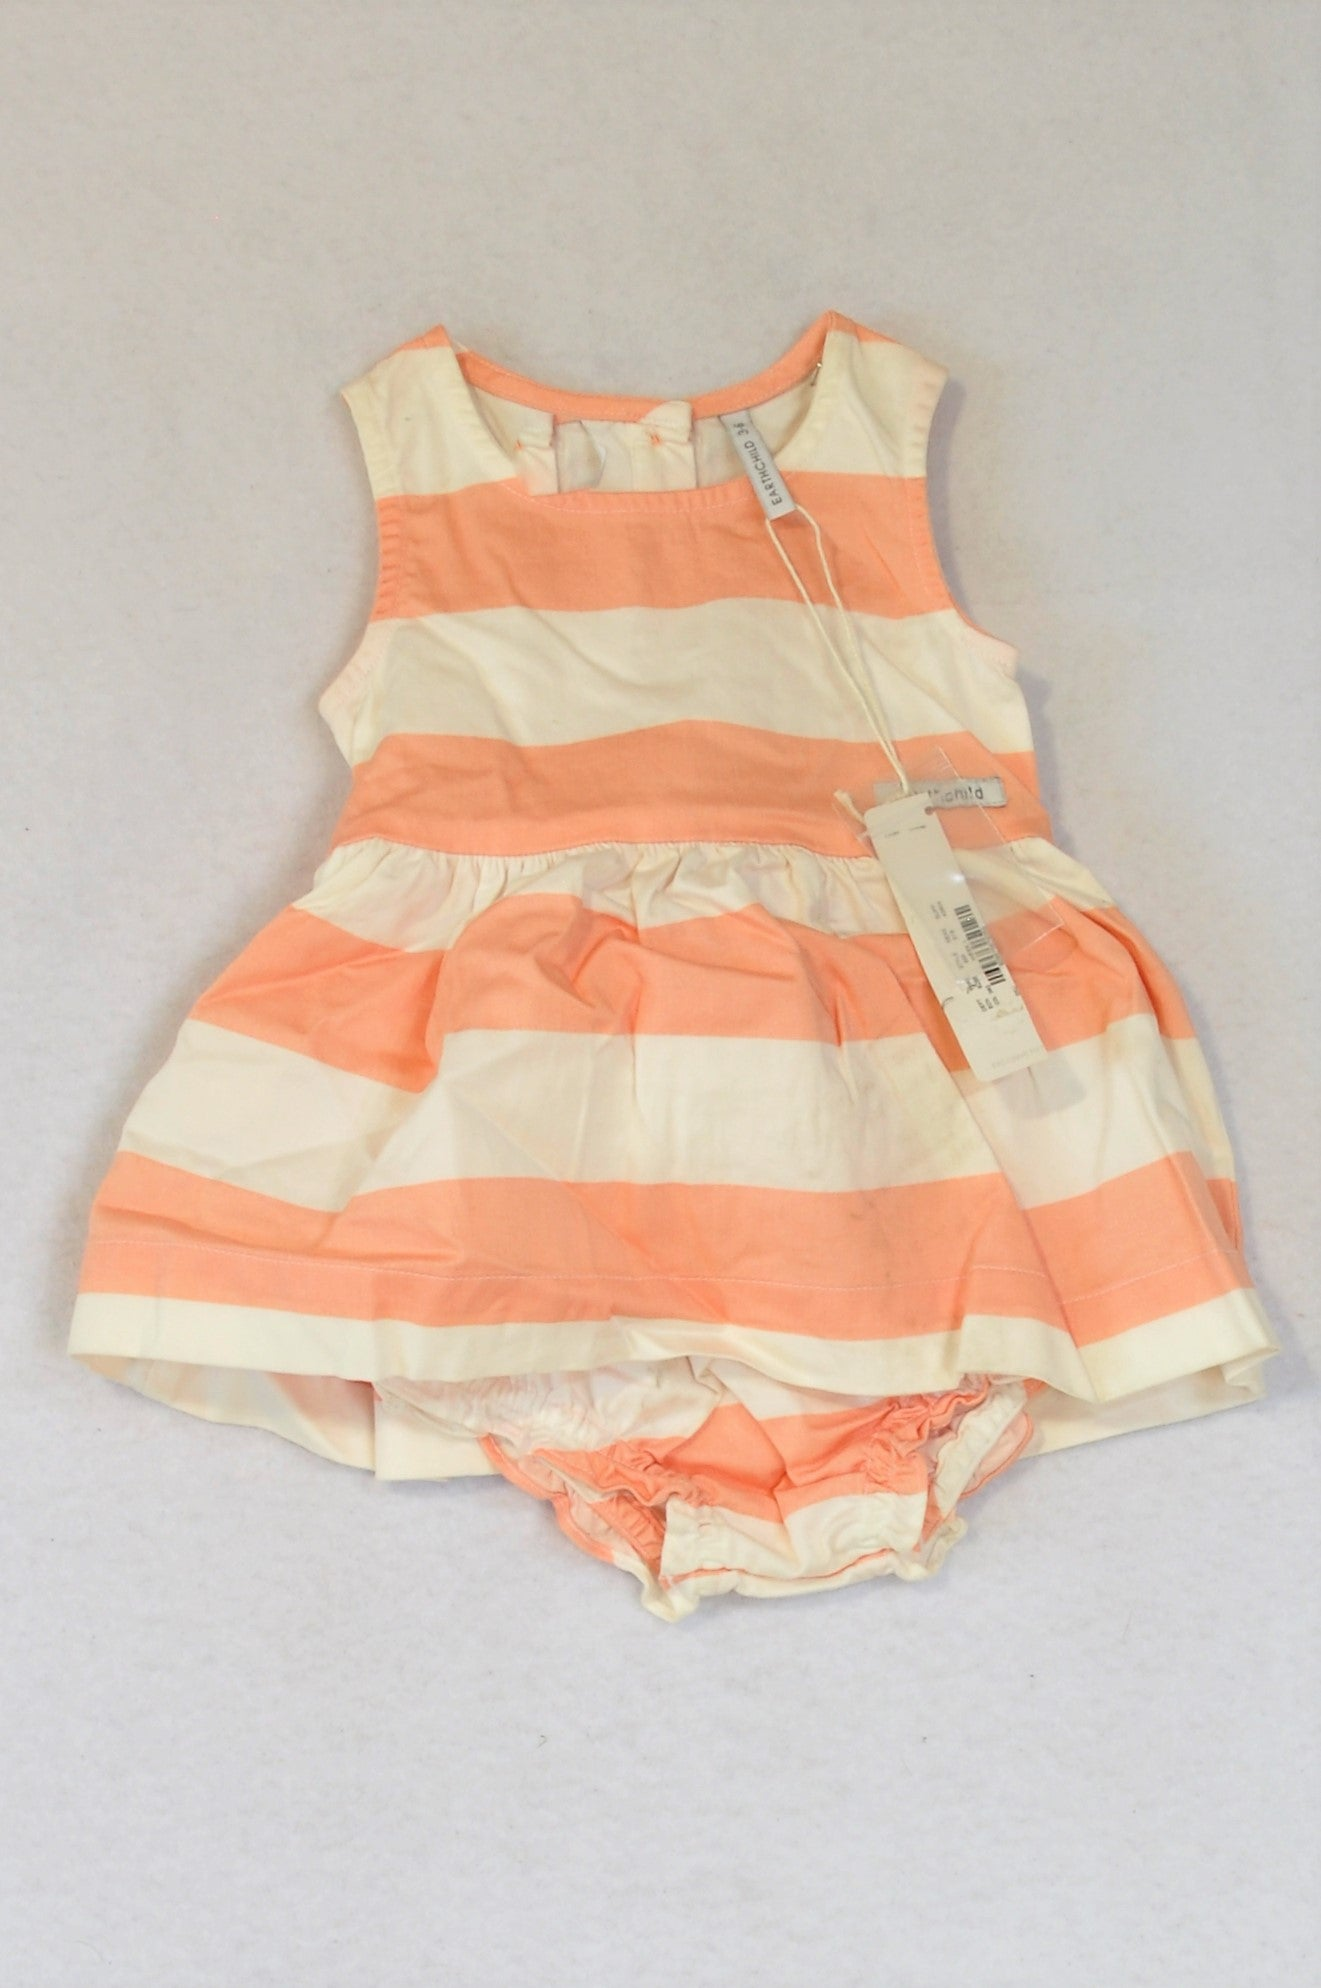 New Earthchild White & Peach Striped Dress & Bloomers Outfit Girls 3-6 months